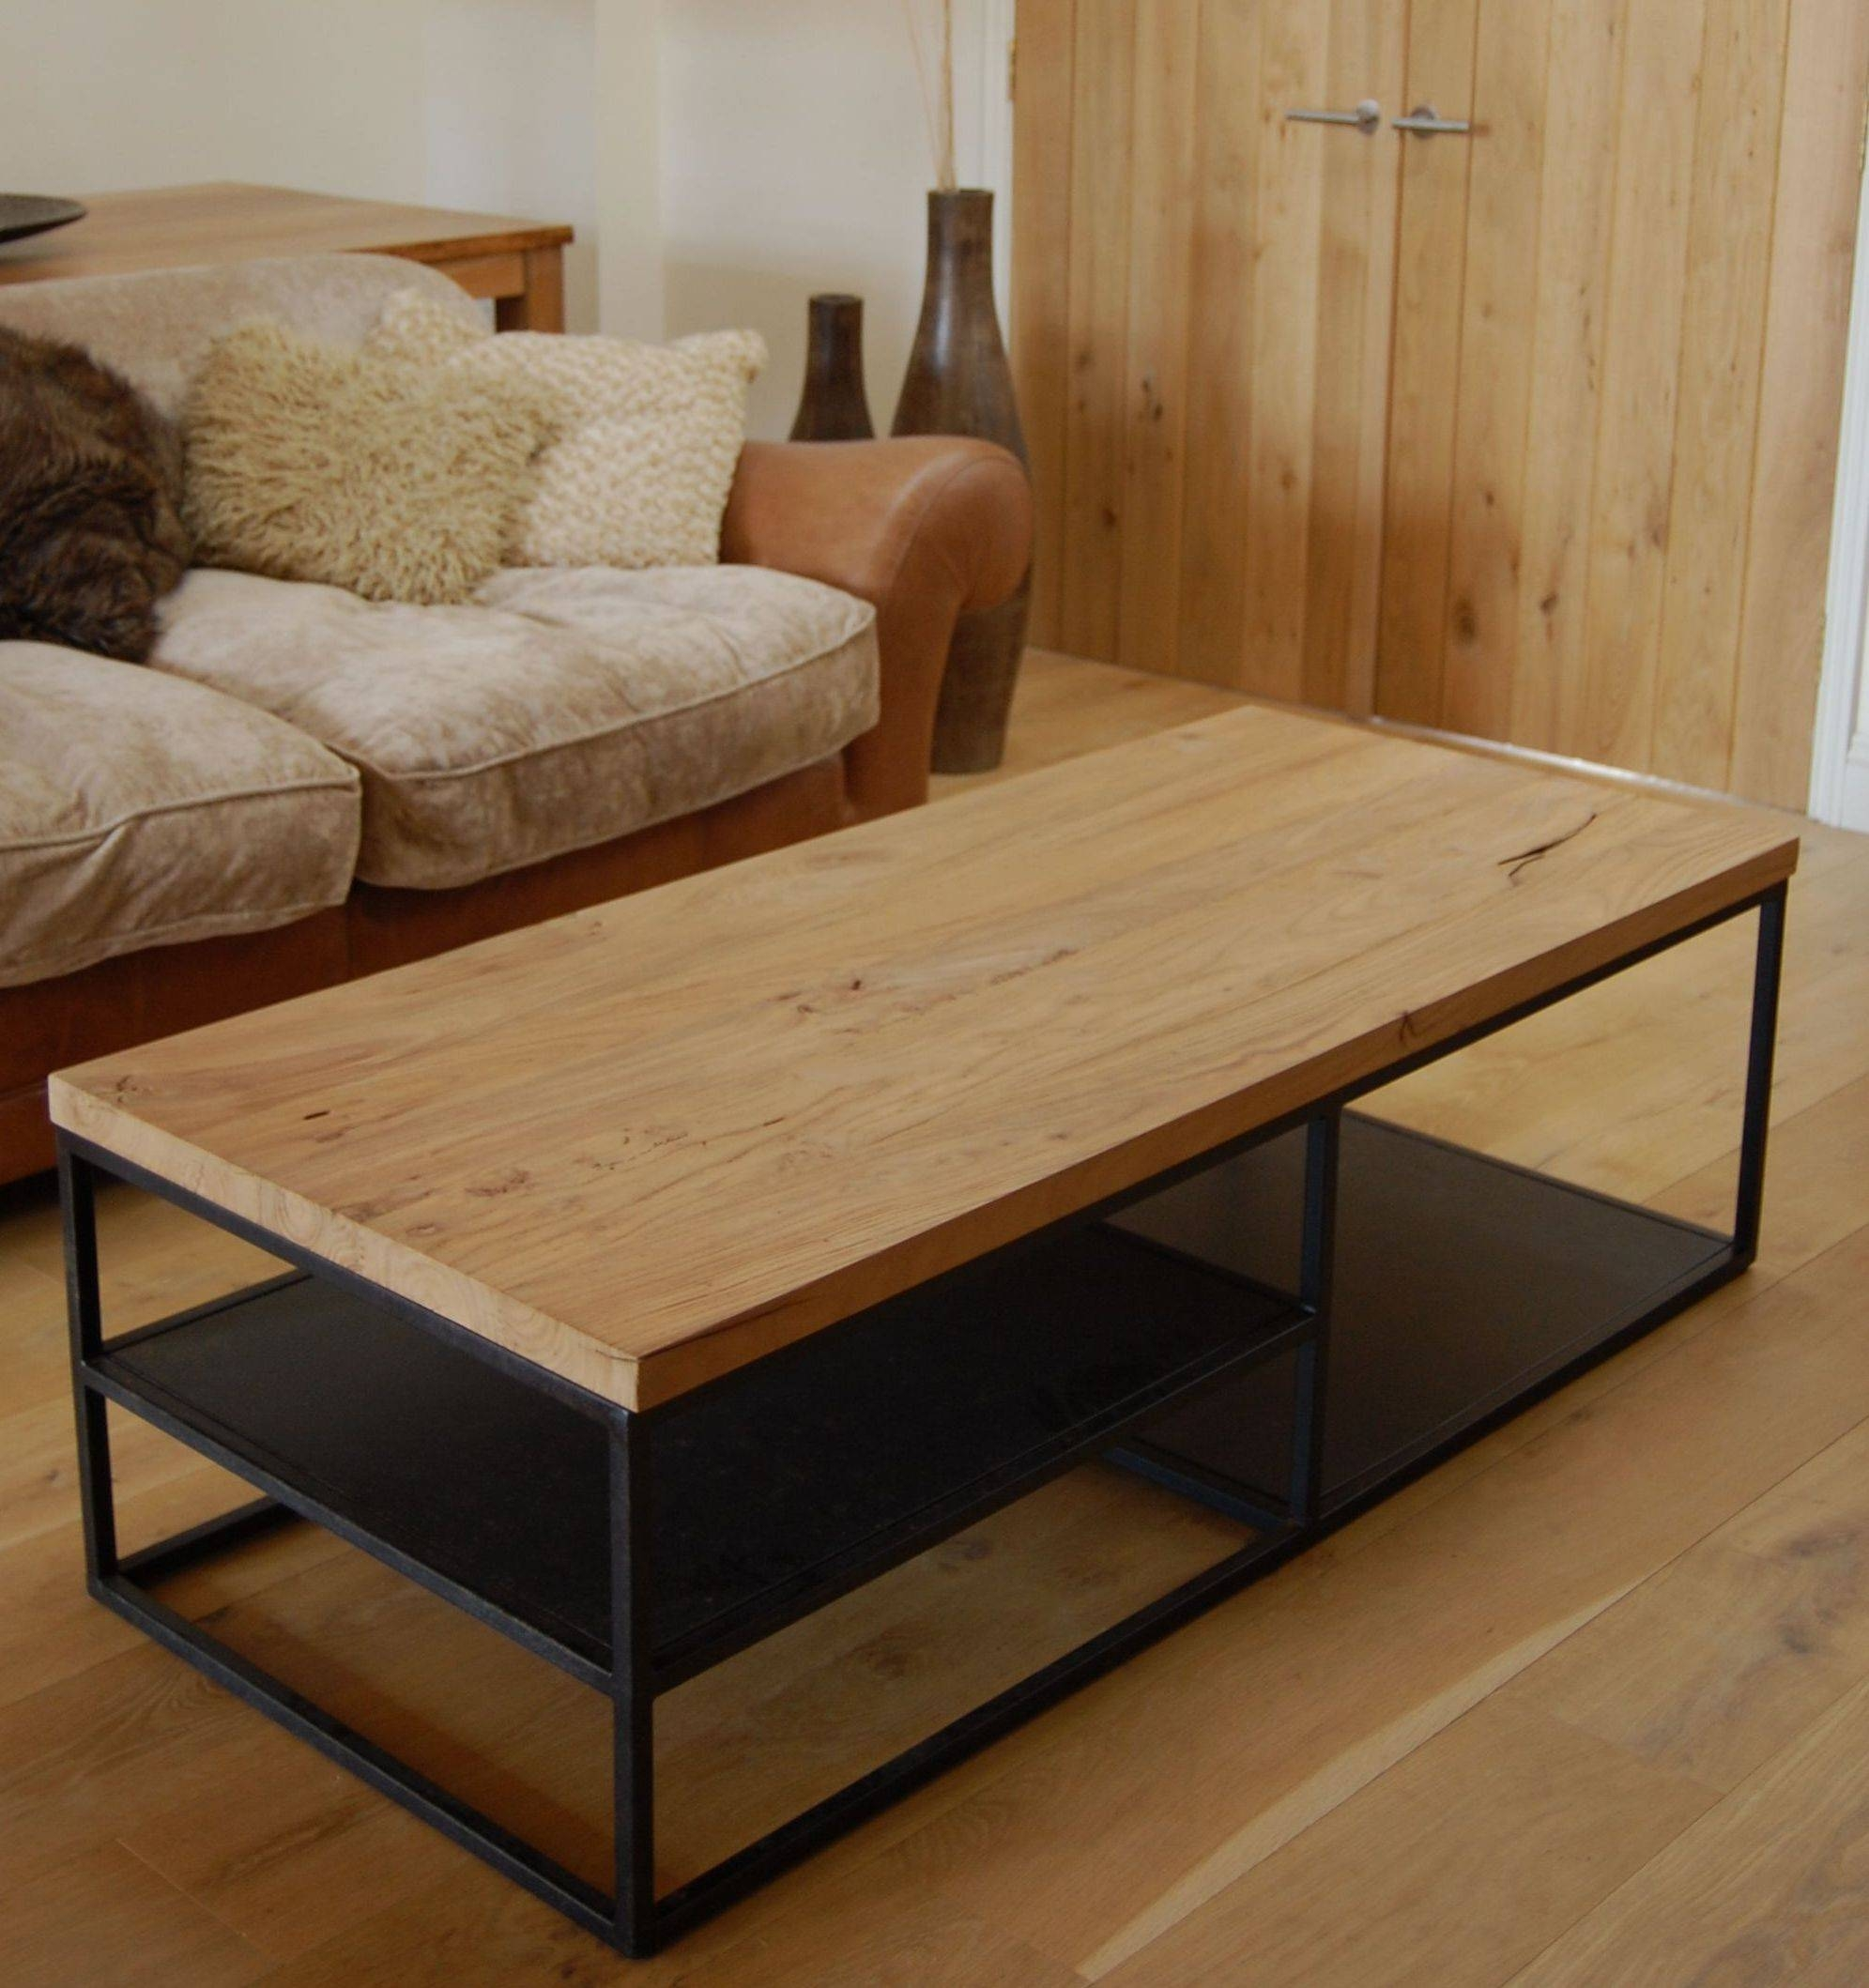 Exciting Reclaimed Wood Coffee Table With Chrome Legs Wood Table with regard to Chrome and Wood Coffee Tables (Image 10 of 30)